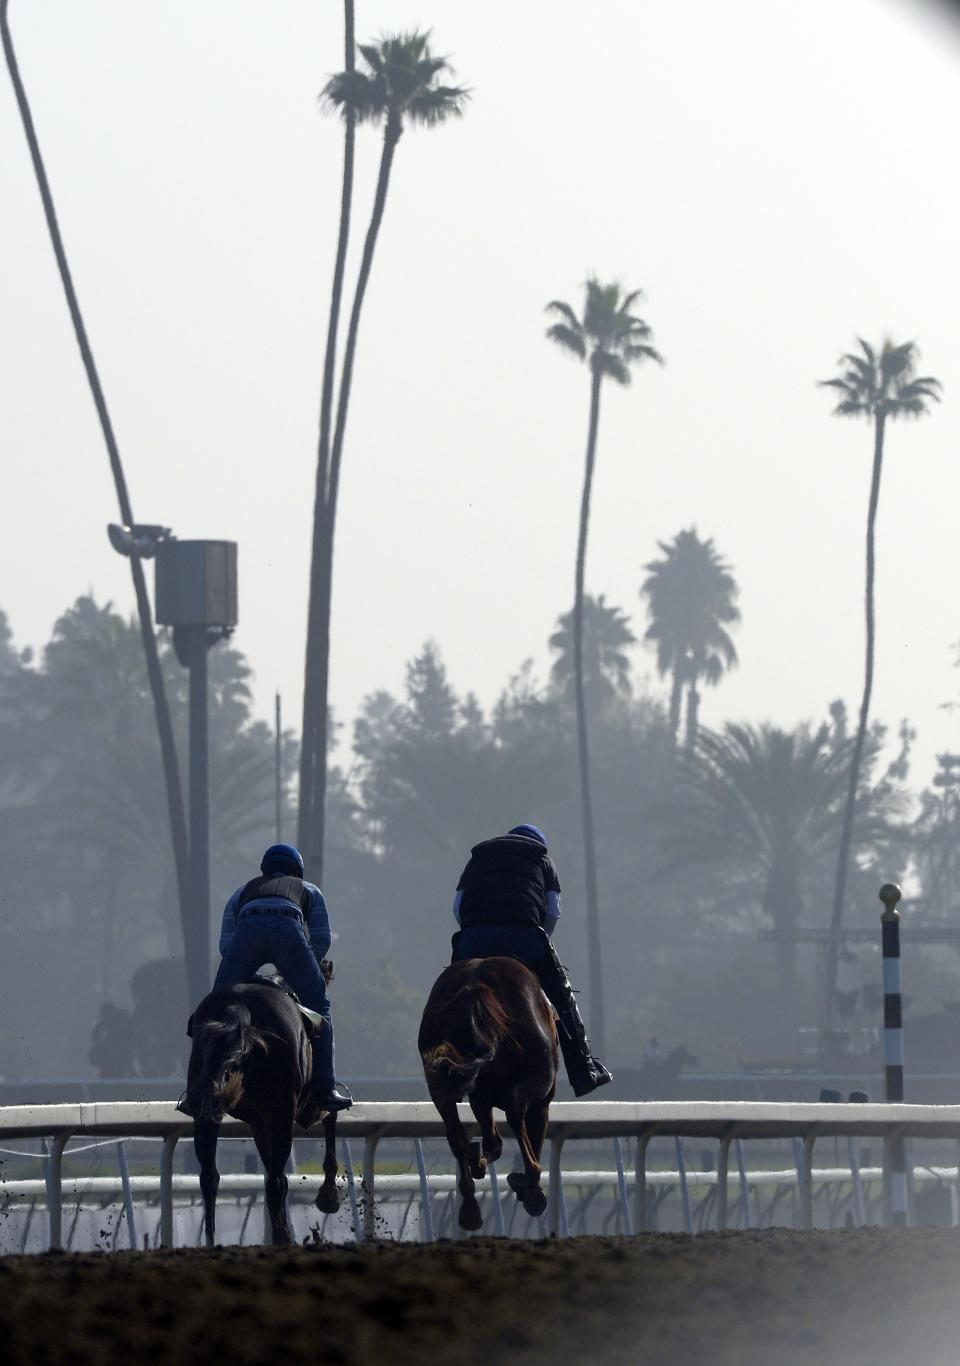 Horses workout at Santa Anita Park, Thursday, Nov. 1, 2012, in Arcadia, Calif. The race track is hosting the Breeders' Cup horse race on Friday and Saturday.  (AP Photo/Mark J. Terrill)